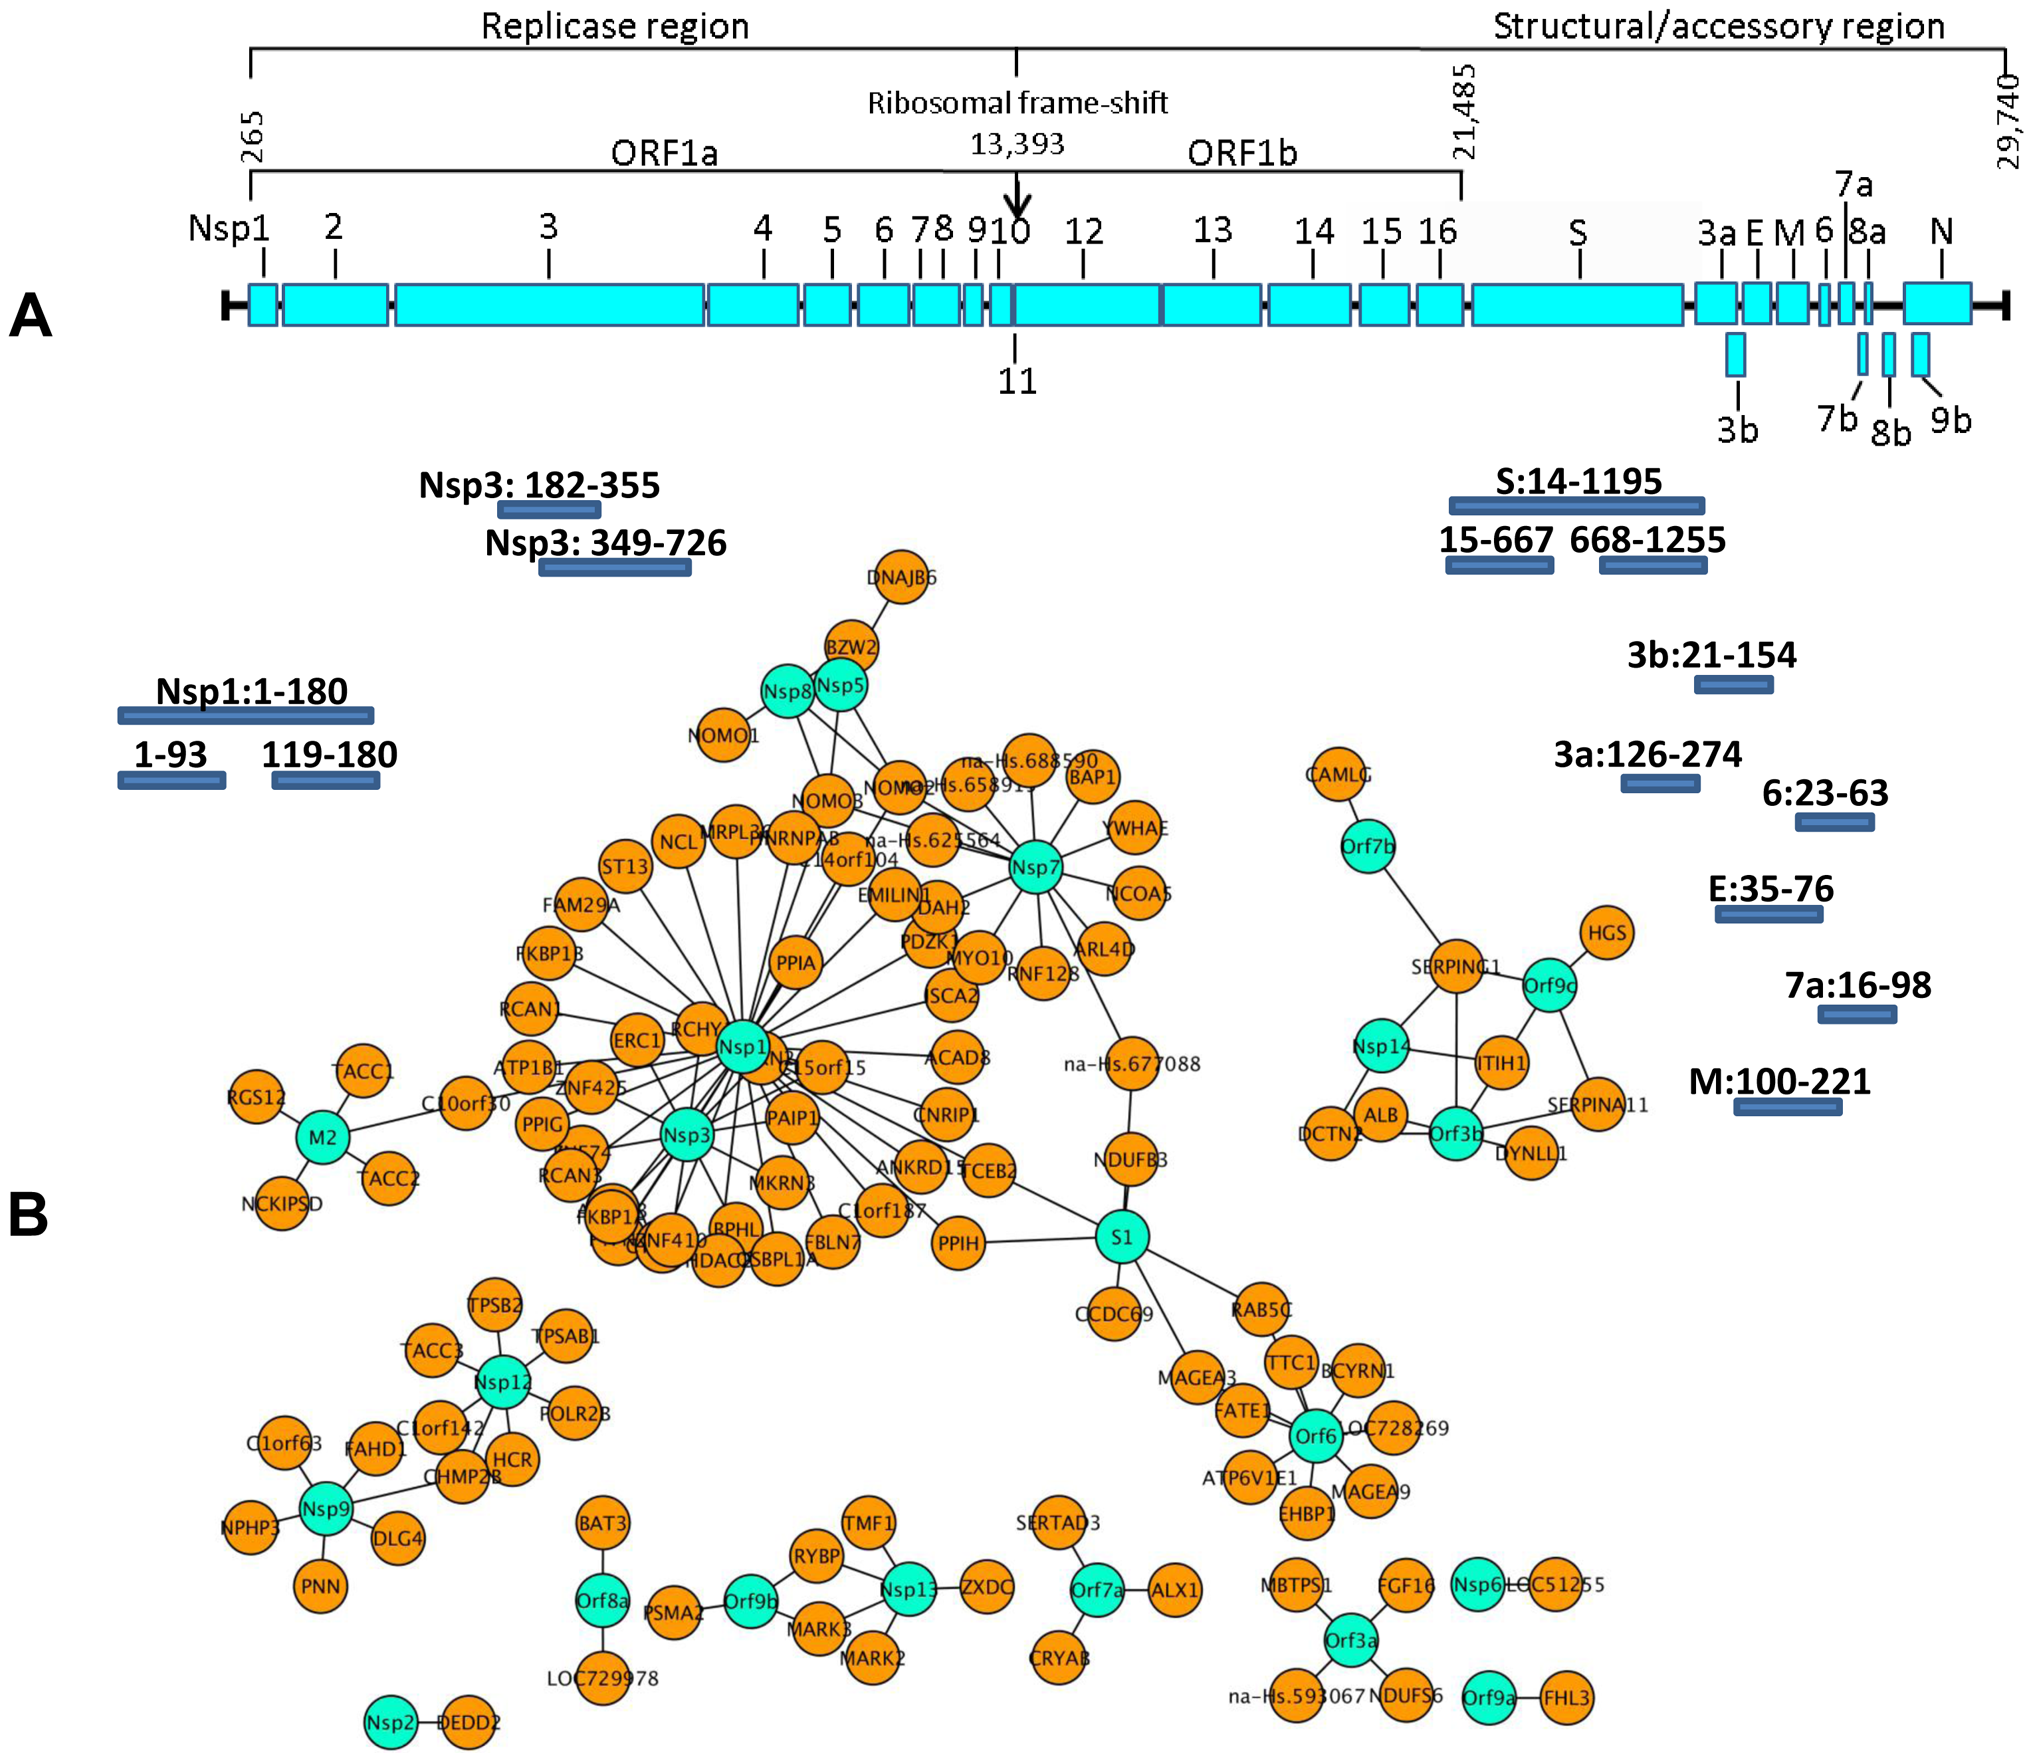 Localization of SARS-CoV ORFs and interaction network of virus host protein interactions.